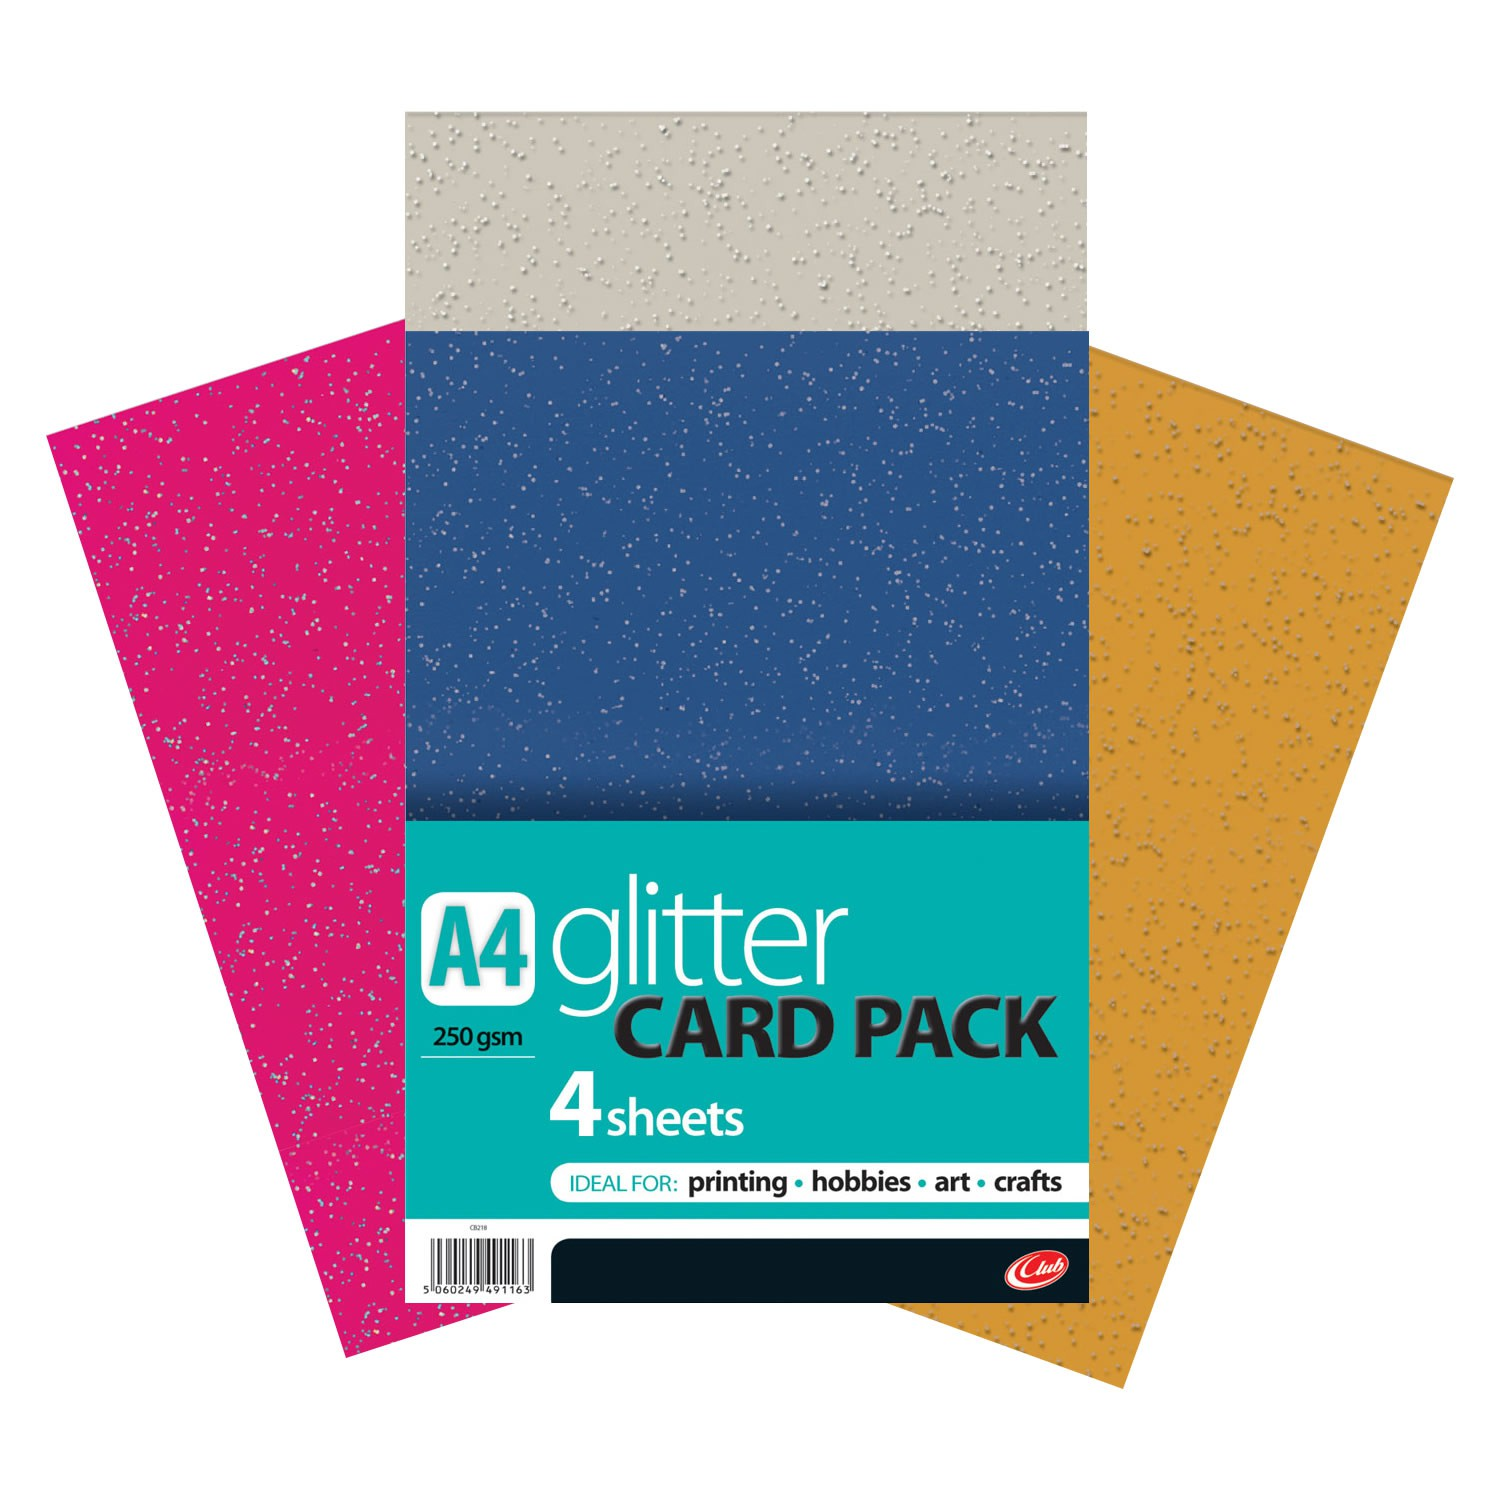 A4 Glitter Card 4sheets CB218